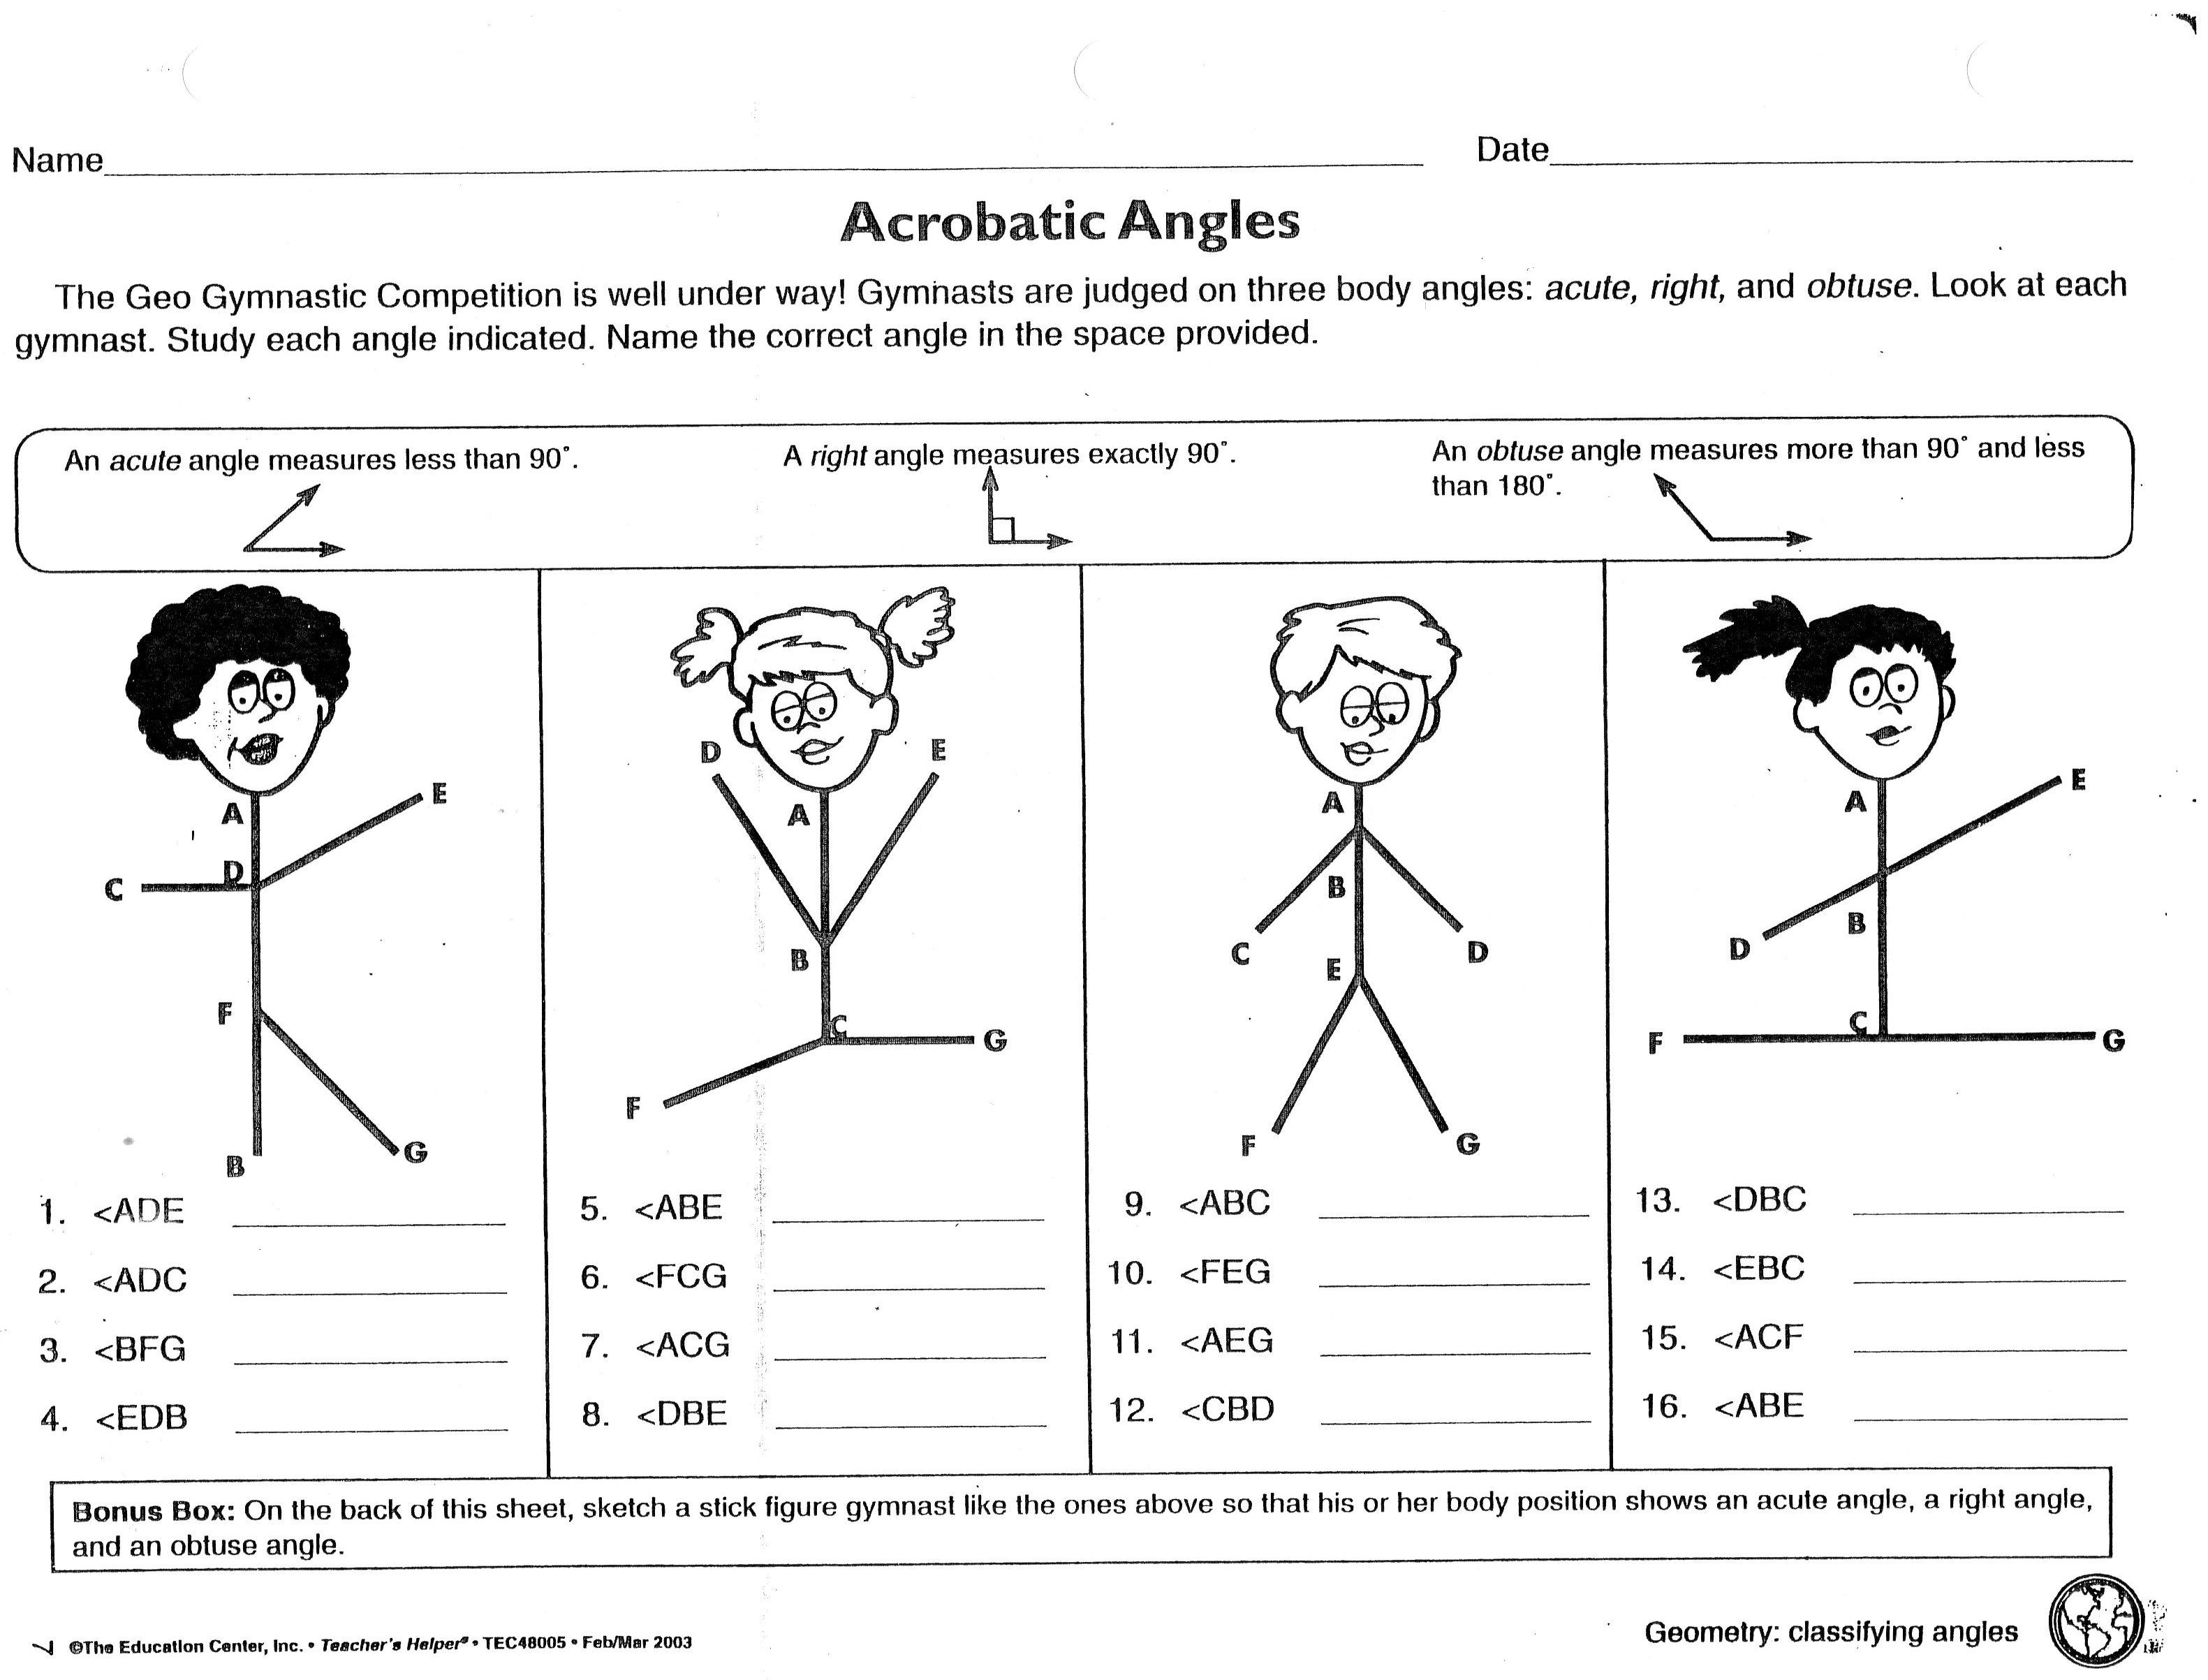 medium resolution of acrobatic angles worksheet obtuse acute right michael jordan was math gr -  Criabooks : Criabooks   Angles worksheet